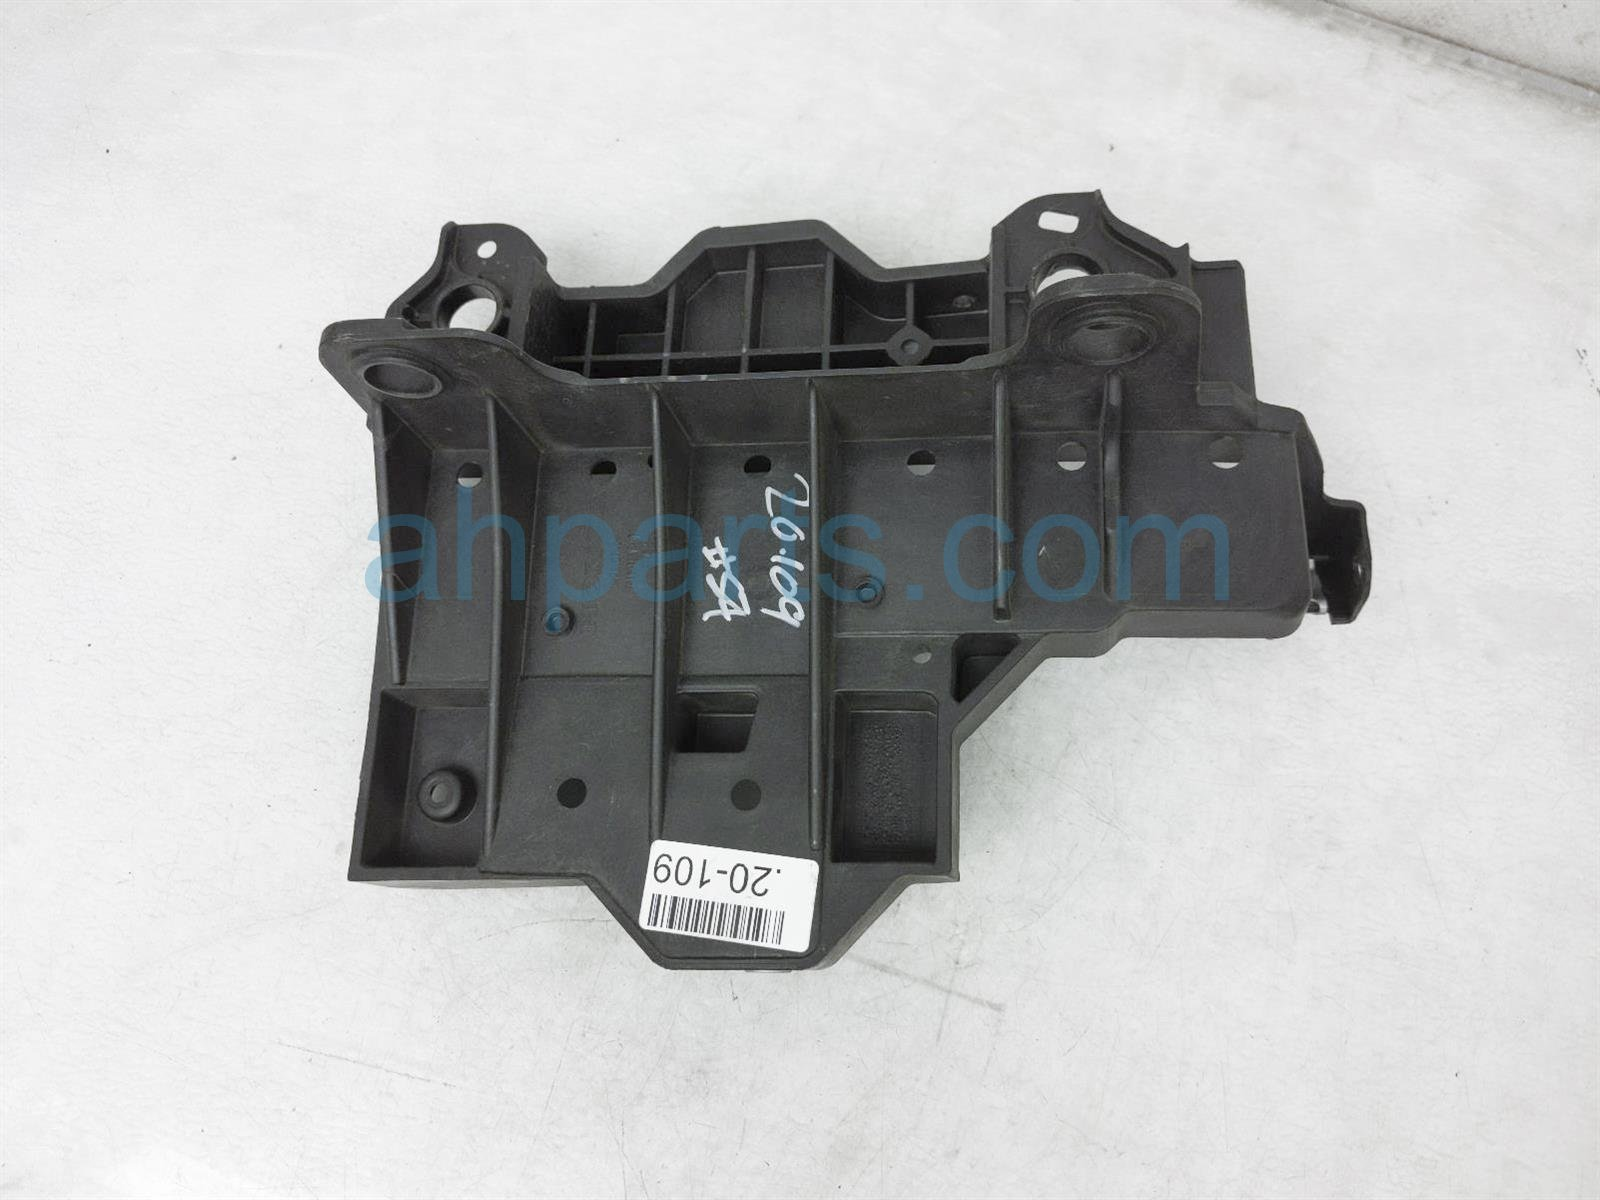 Sold 2019 Honda Pilot Battery Base Tray 74190 TZ5 A11 Replacement